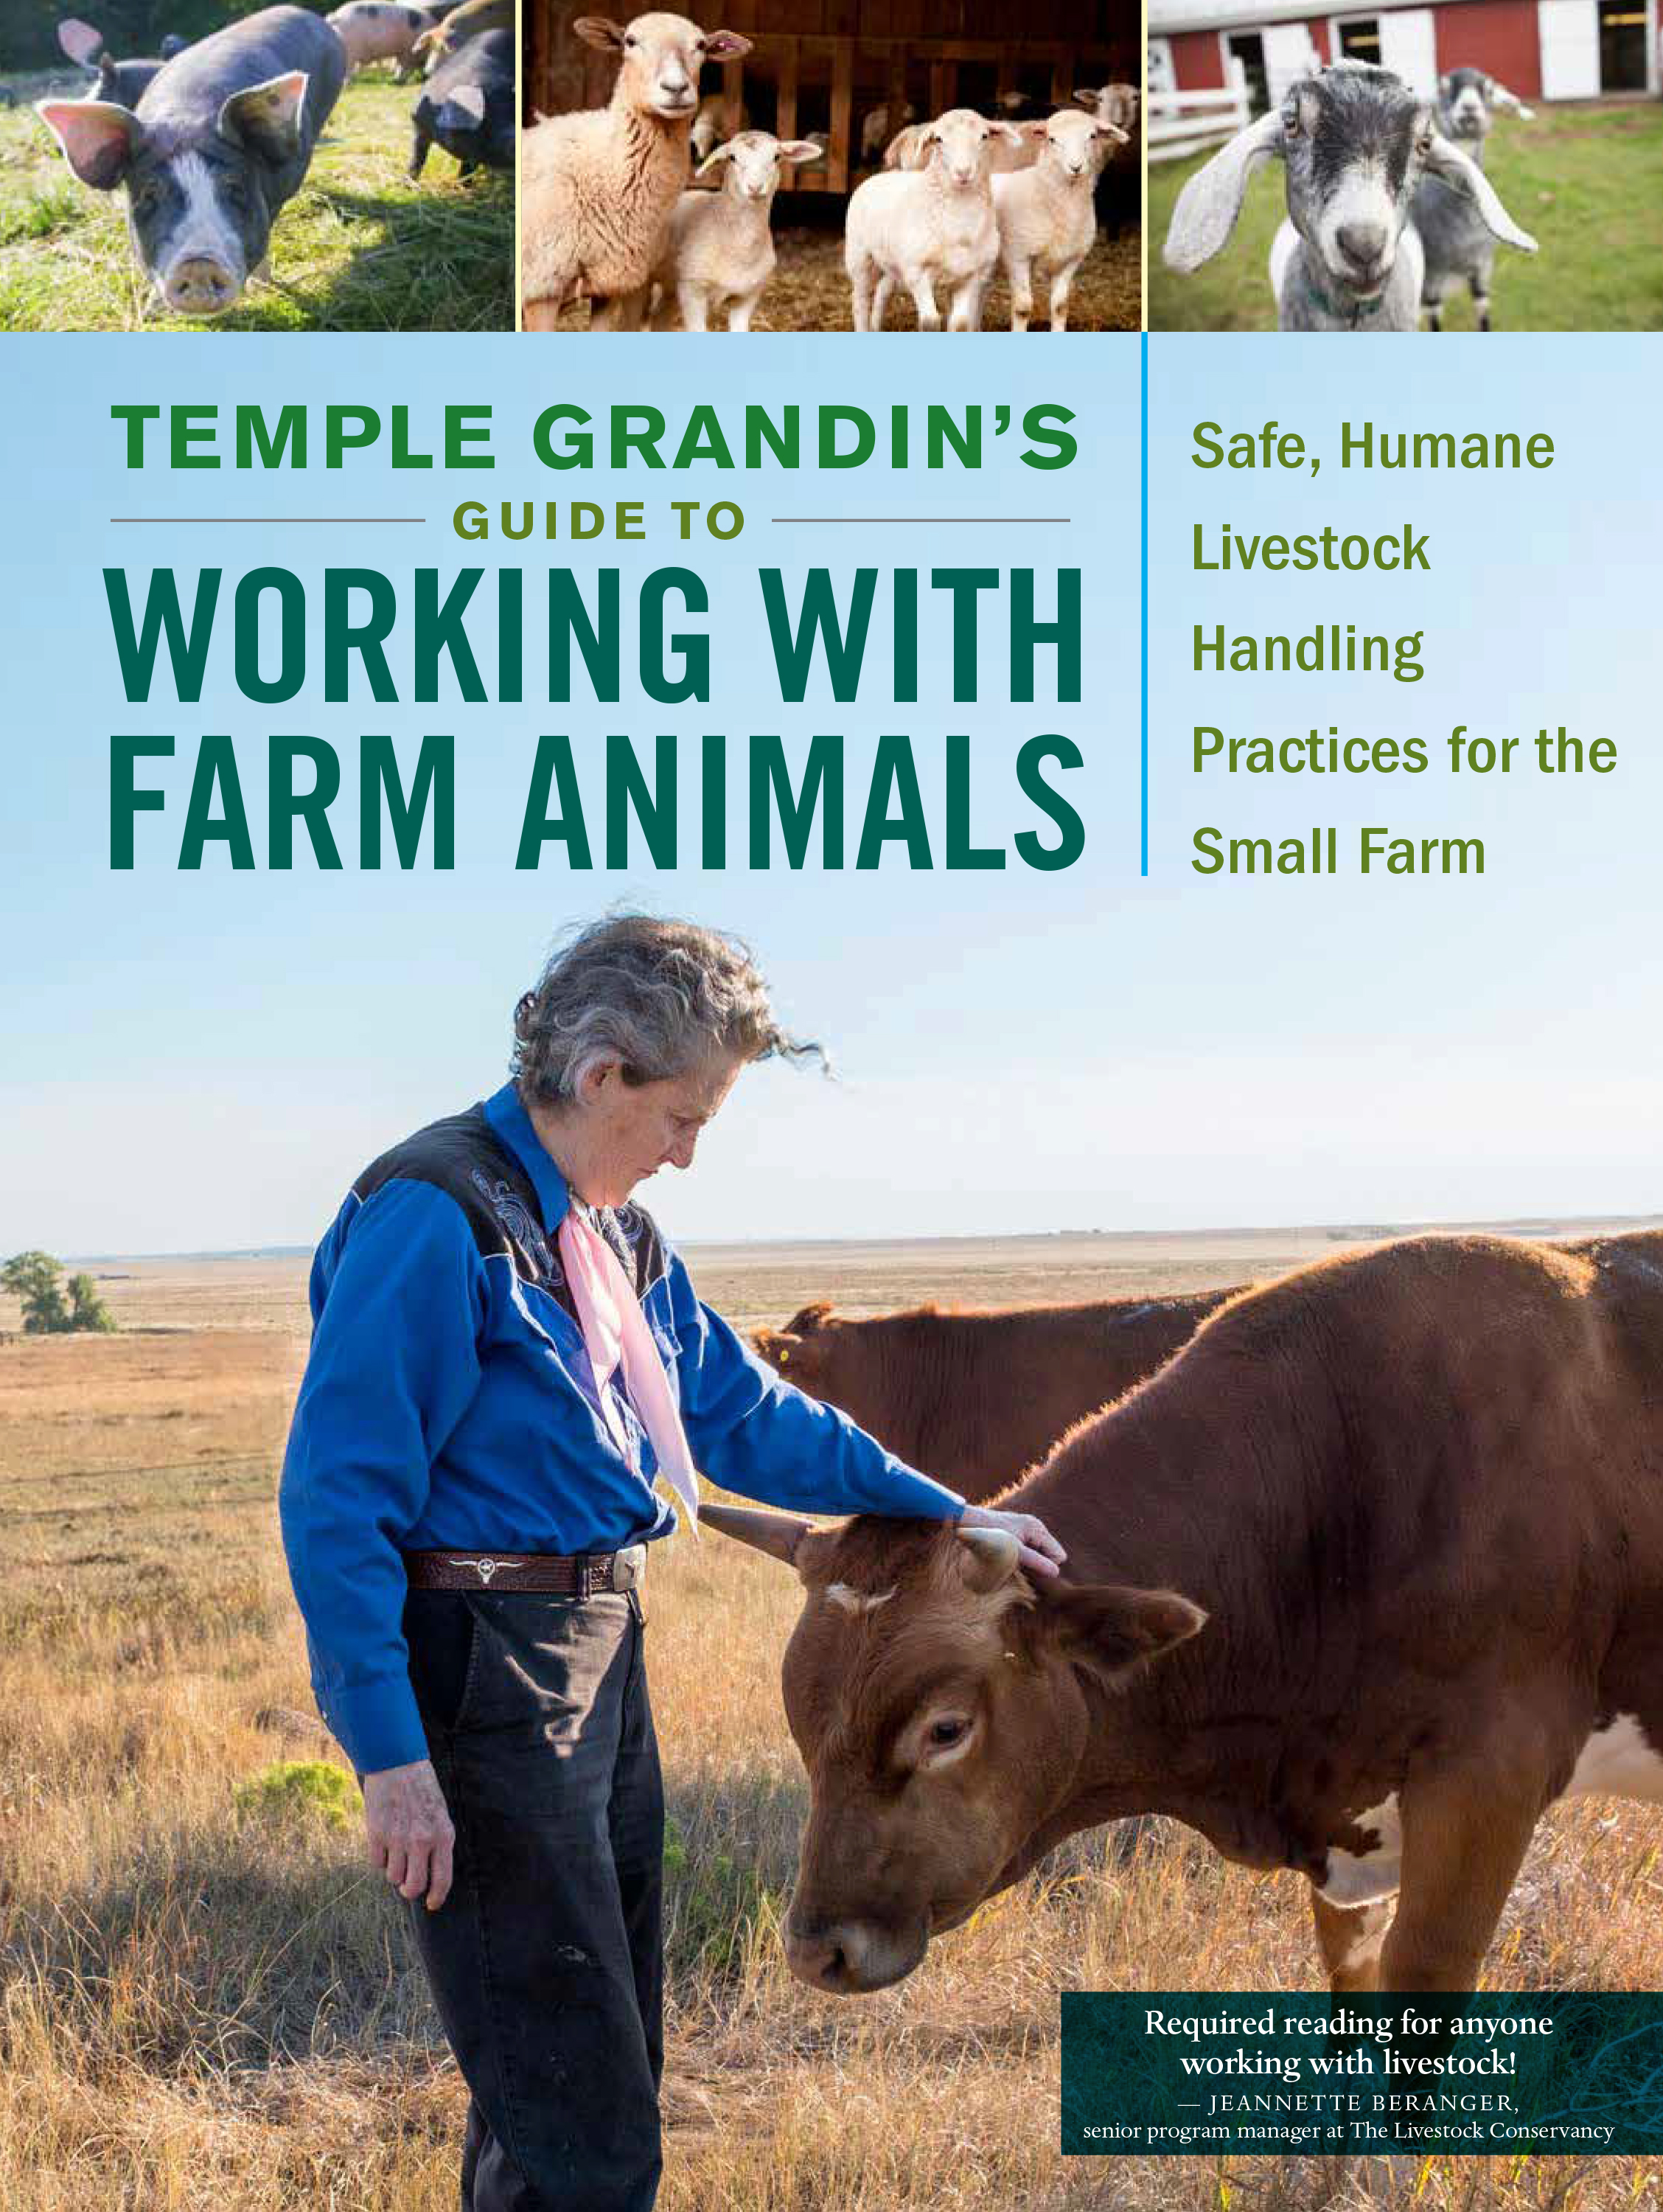 Temple Grandin's Guide to Working with Farm Animals Safe, Humane Livestock Handling Practices for the Small Farm - Temple Grandin